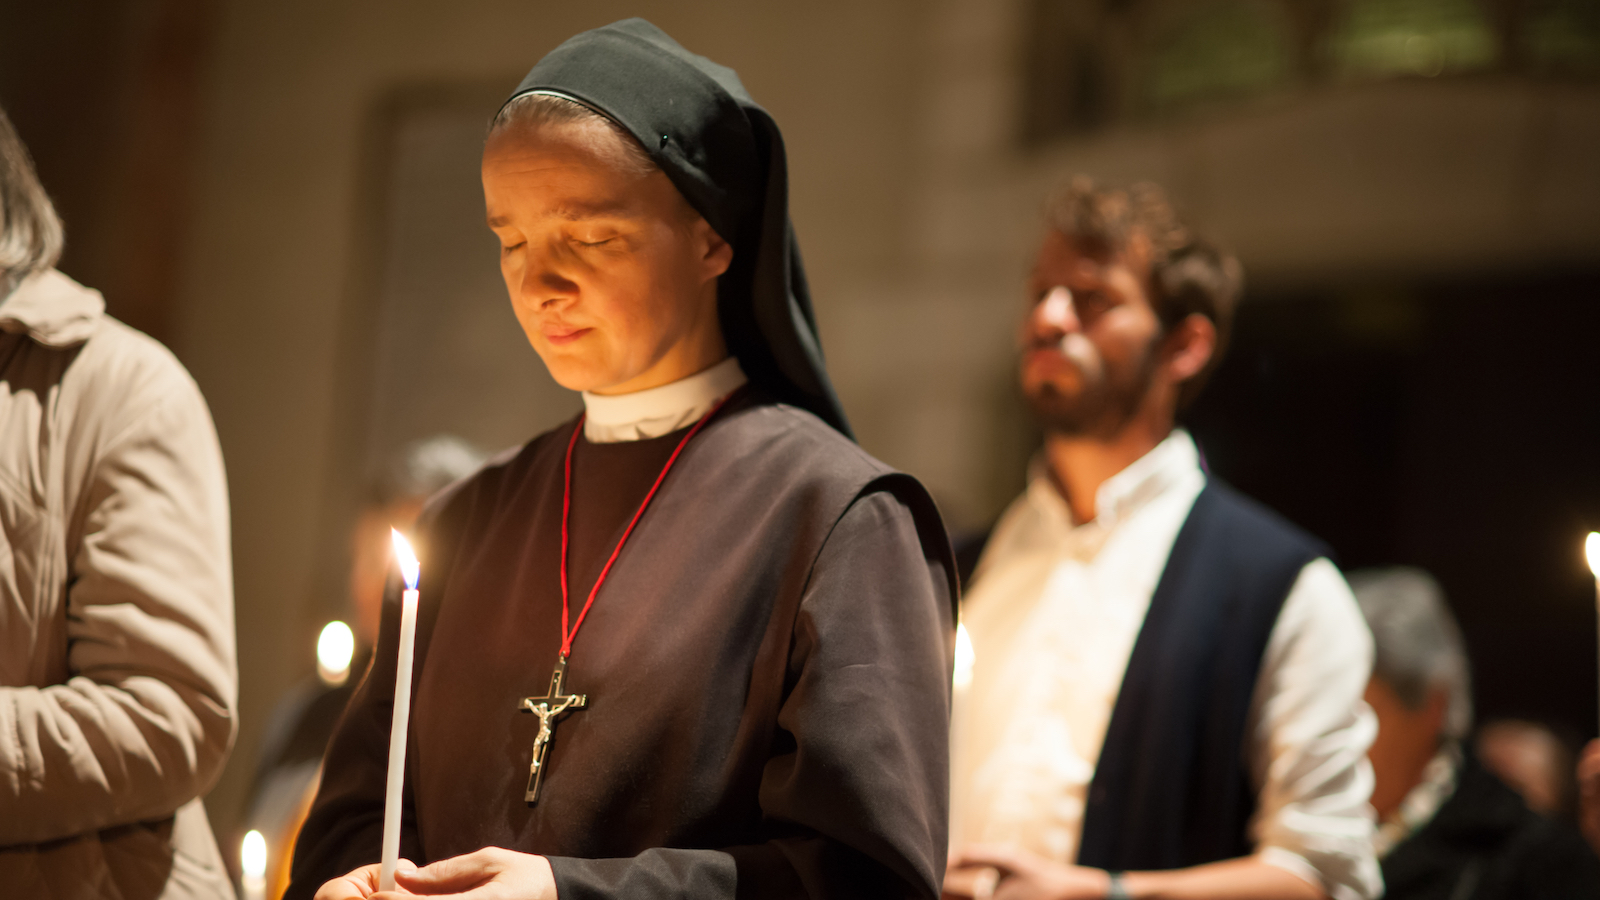 Nun holds a candle while praying in a church